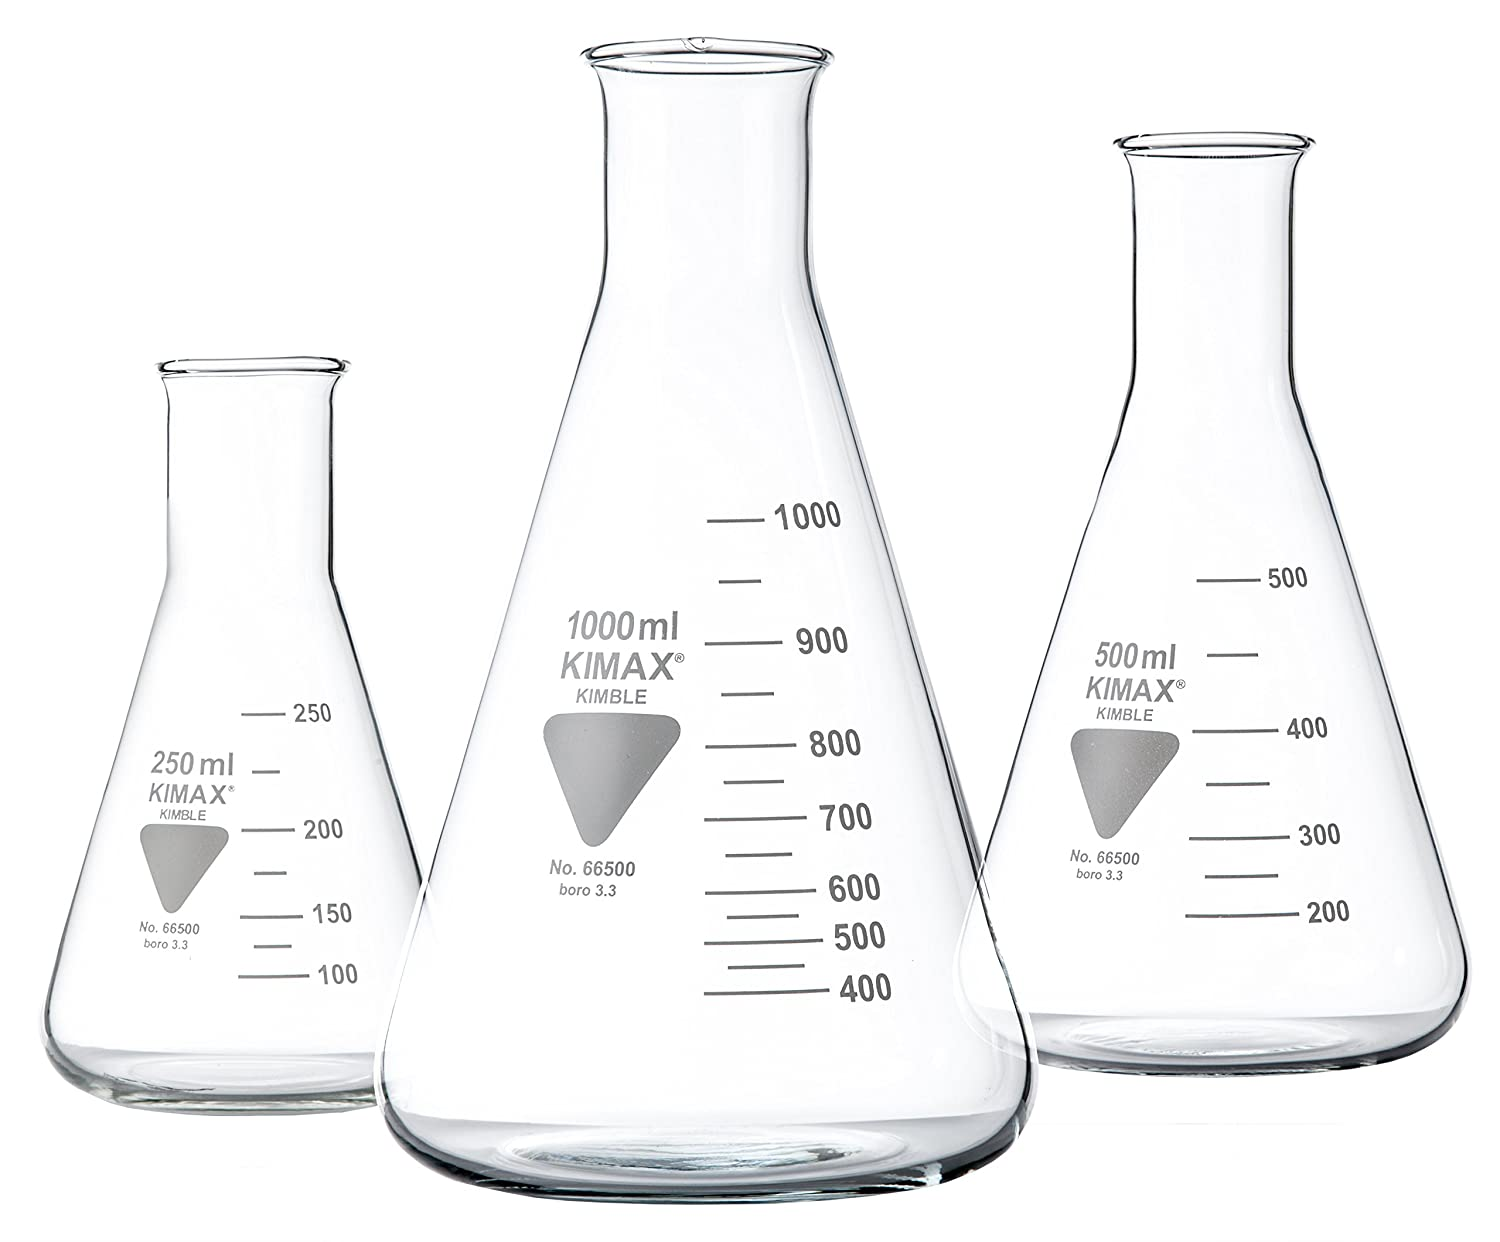 neolab 1– 0180  Erlenmeyer, enghals, kimax coktail 3,3, 500  ml 500 ml 1-0180